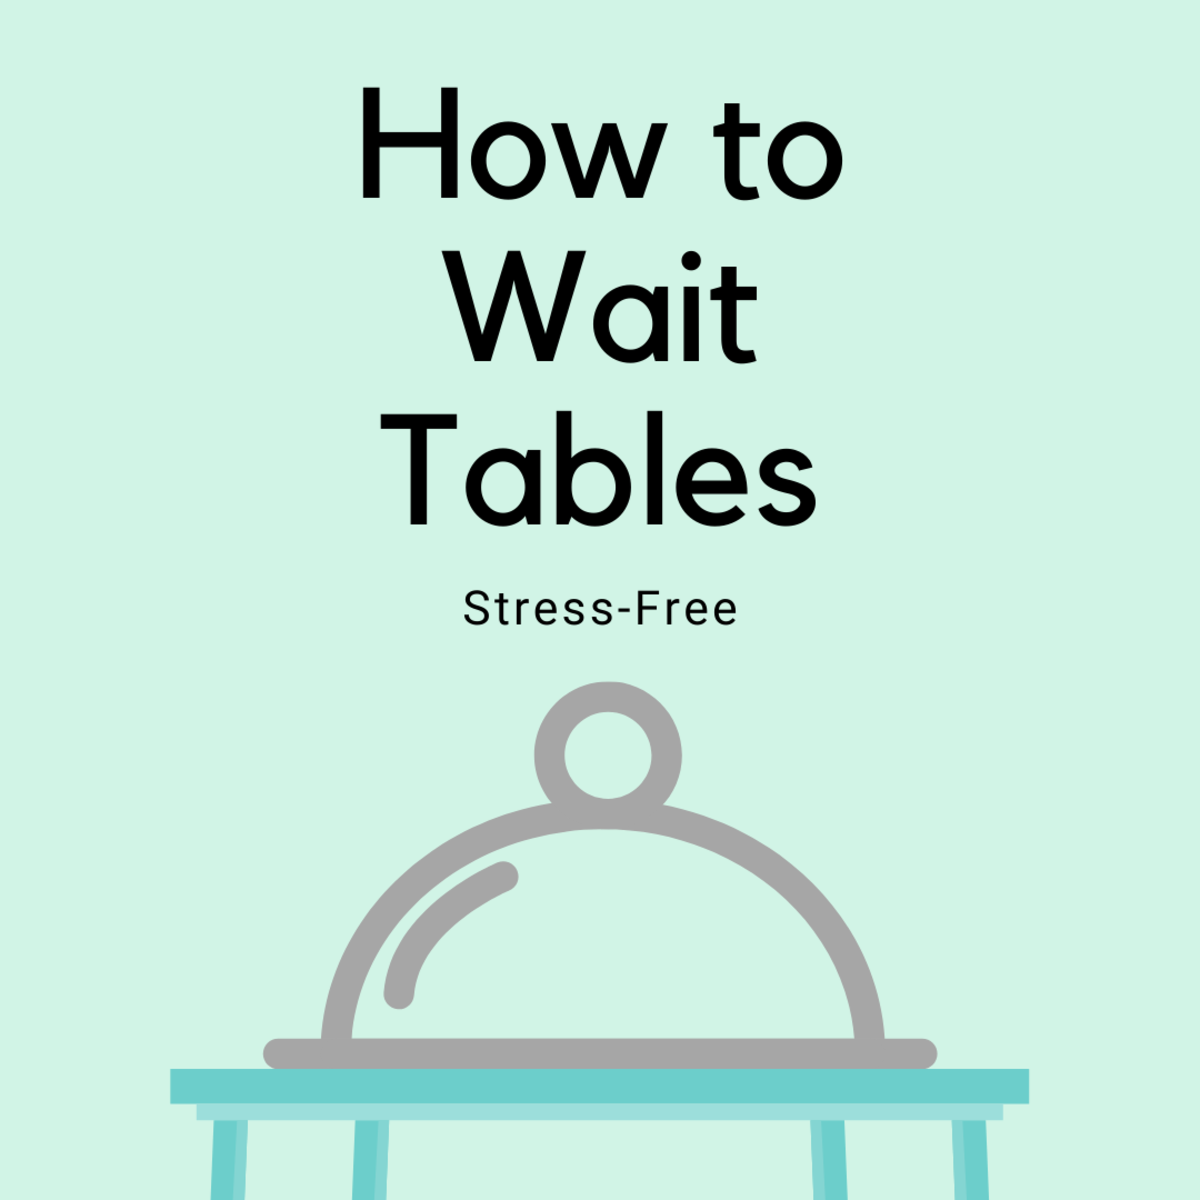 Learn how to wait tables without having to stress!